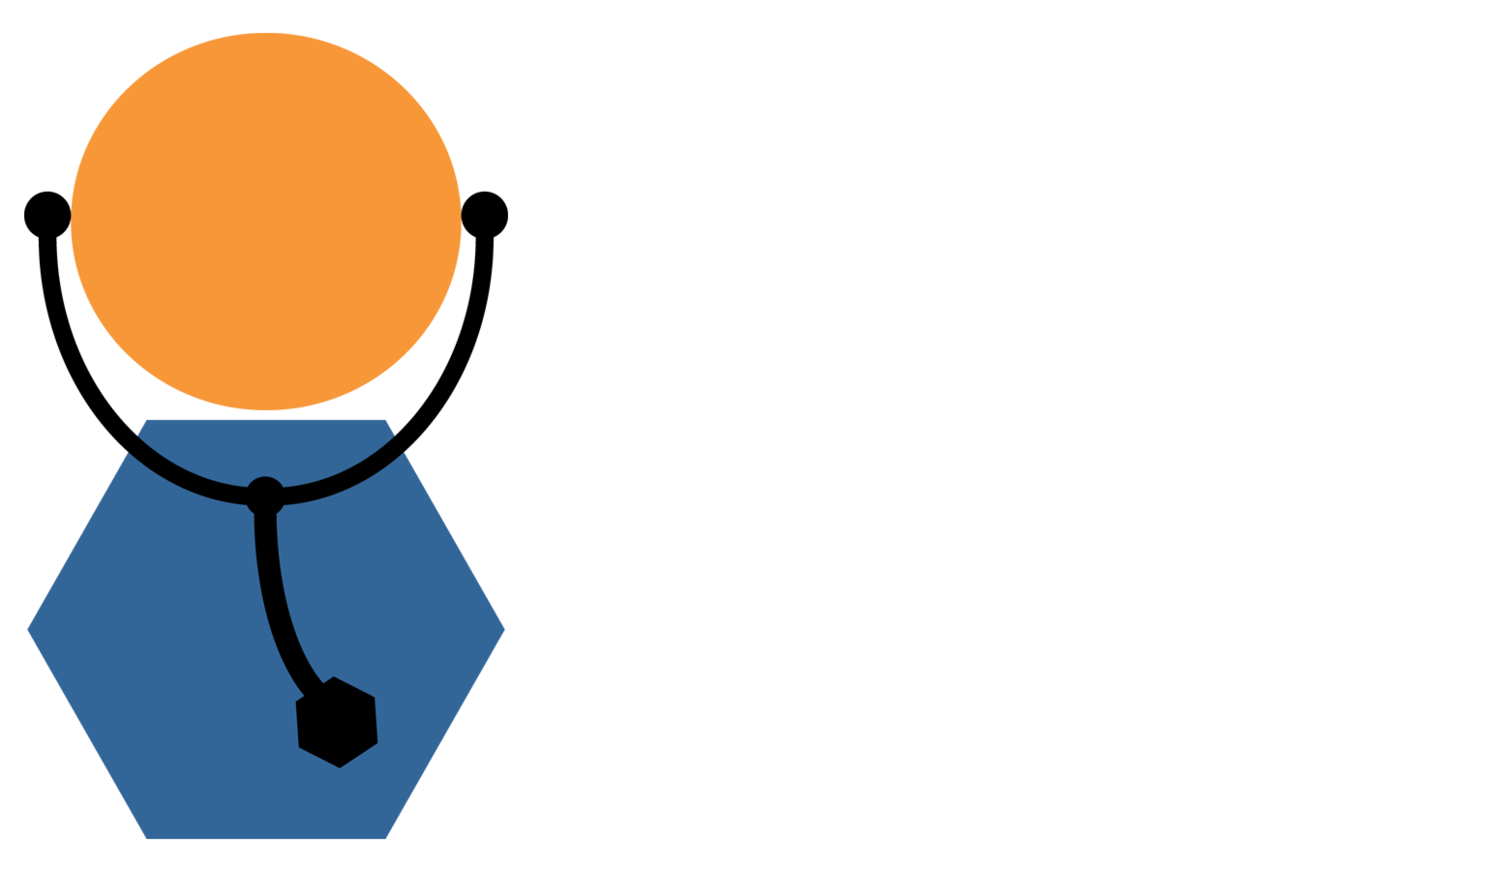 Primary Care Clinic of North Texas